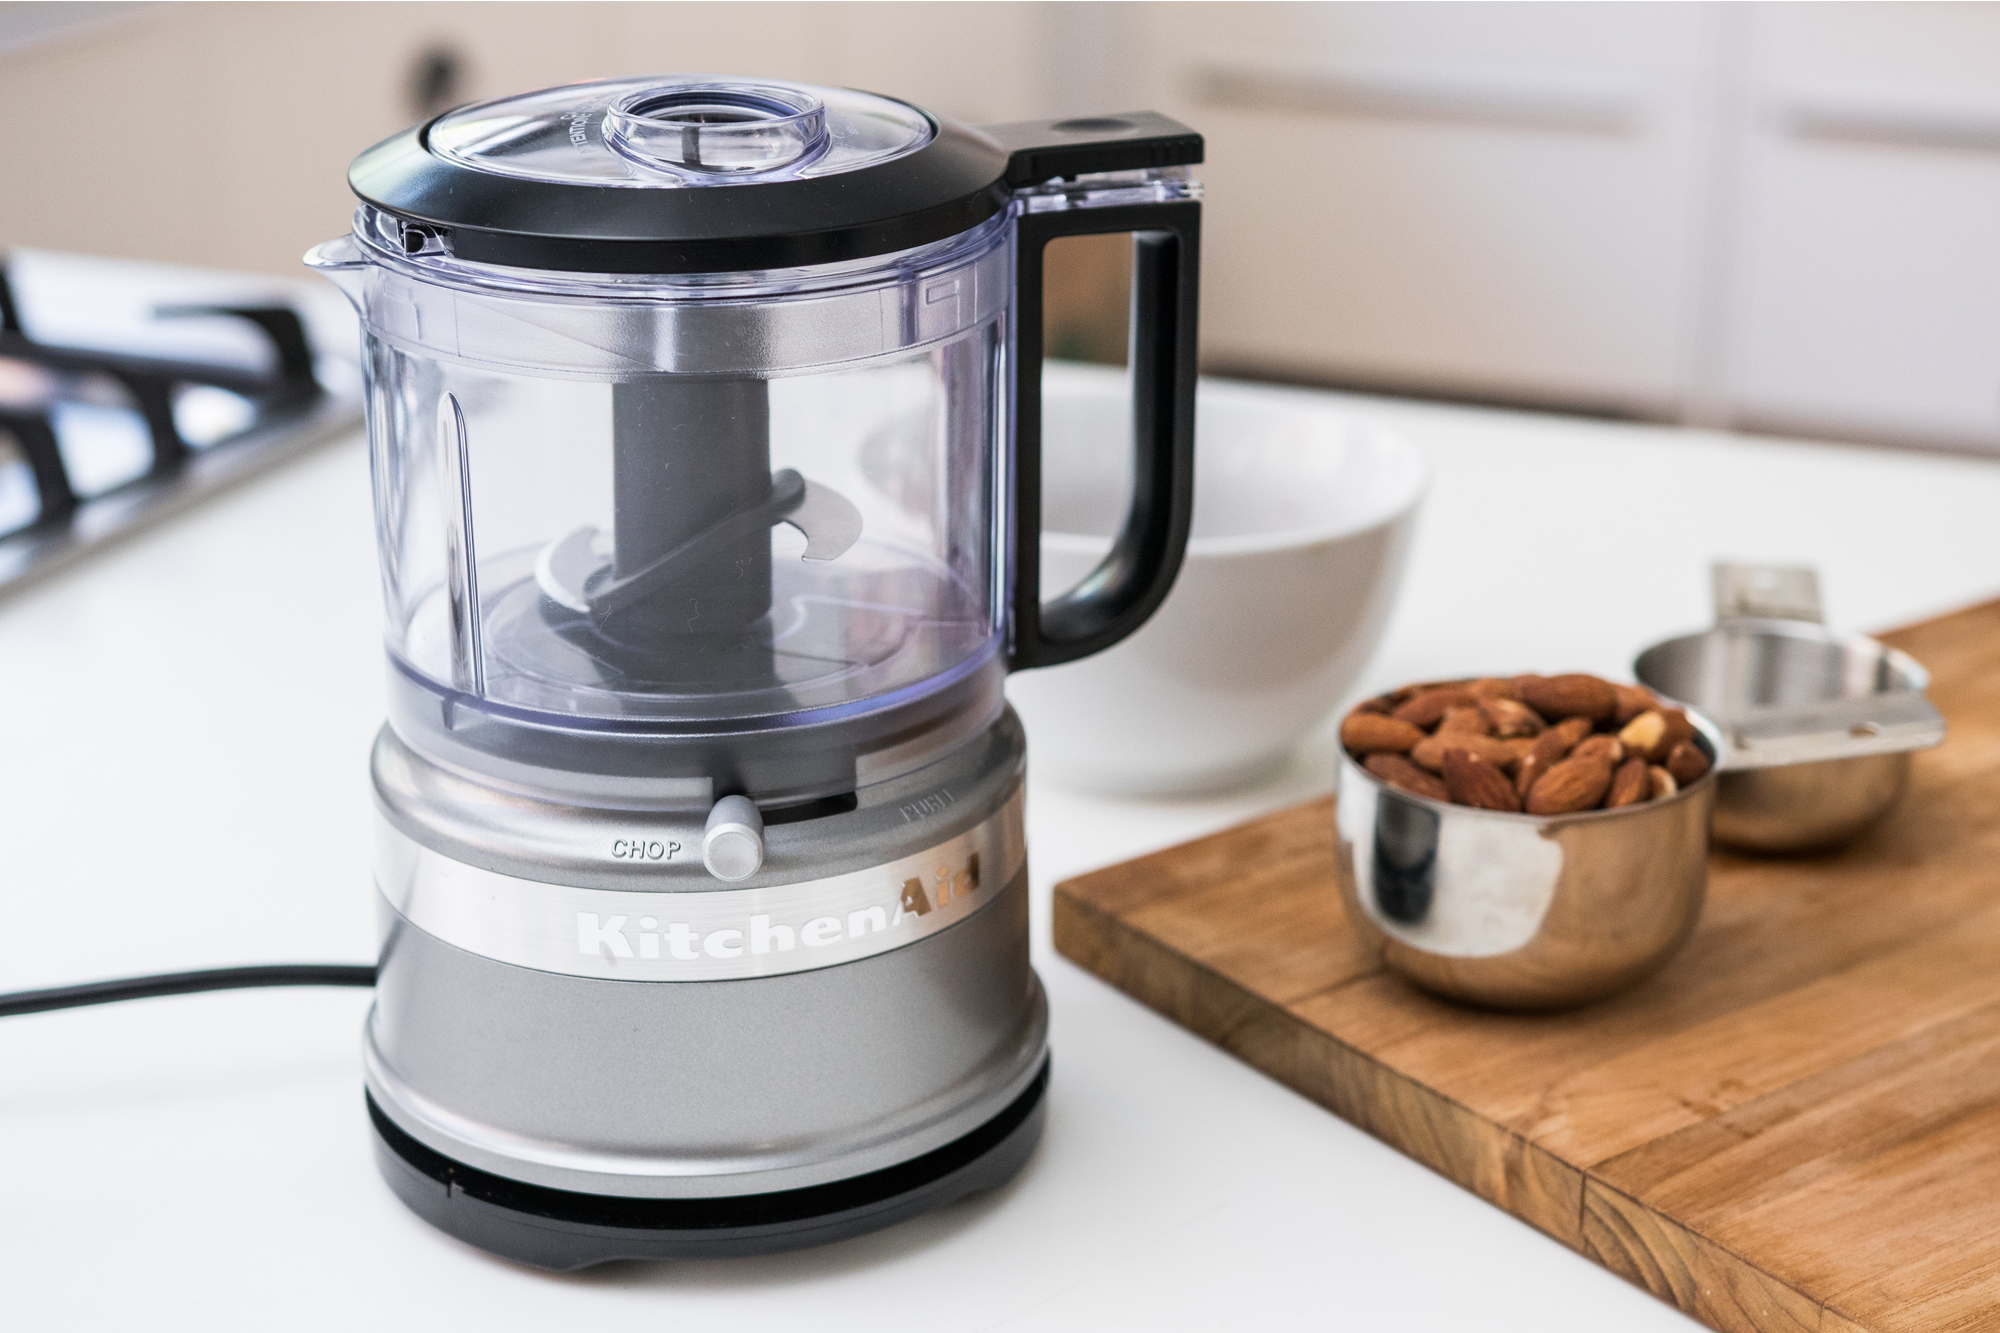 Superieur Great For Small Batches: KitchenAid 3.5 Cup Mini Food Processor